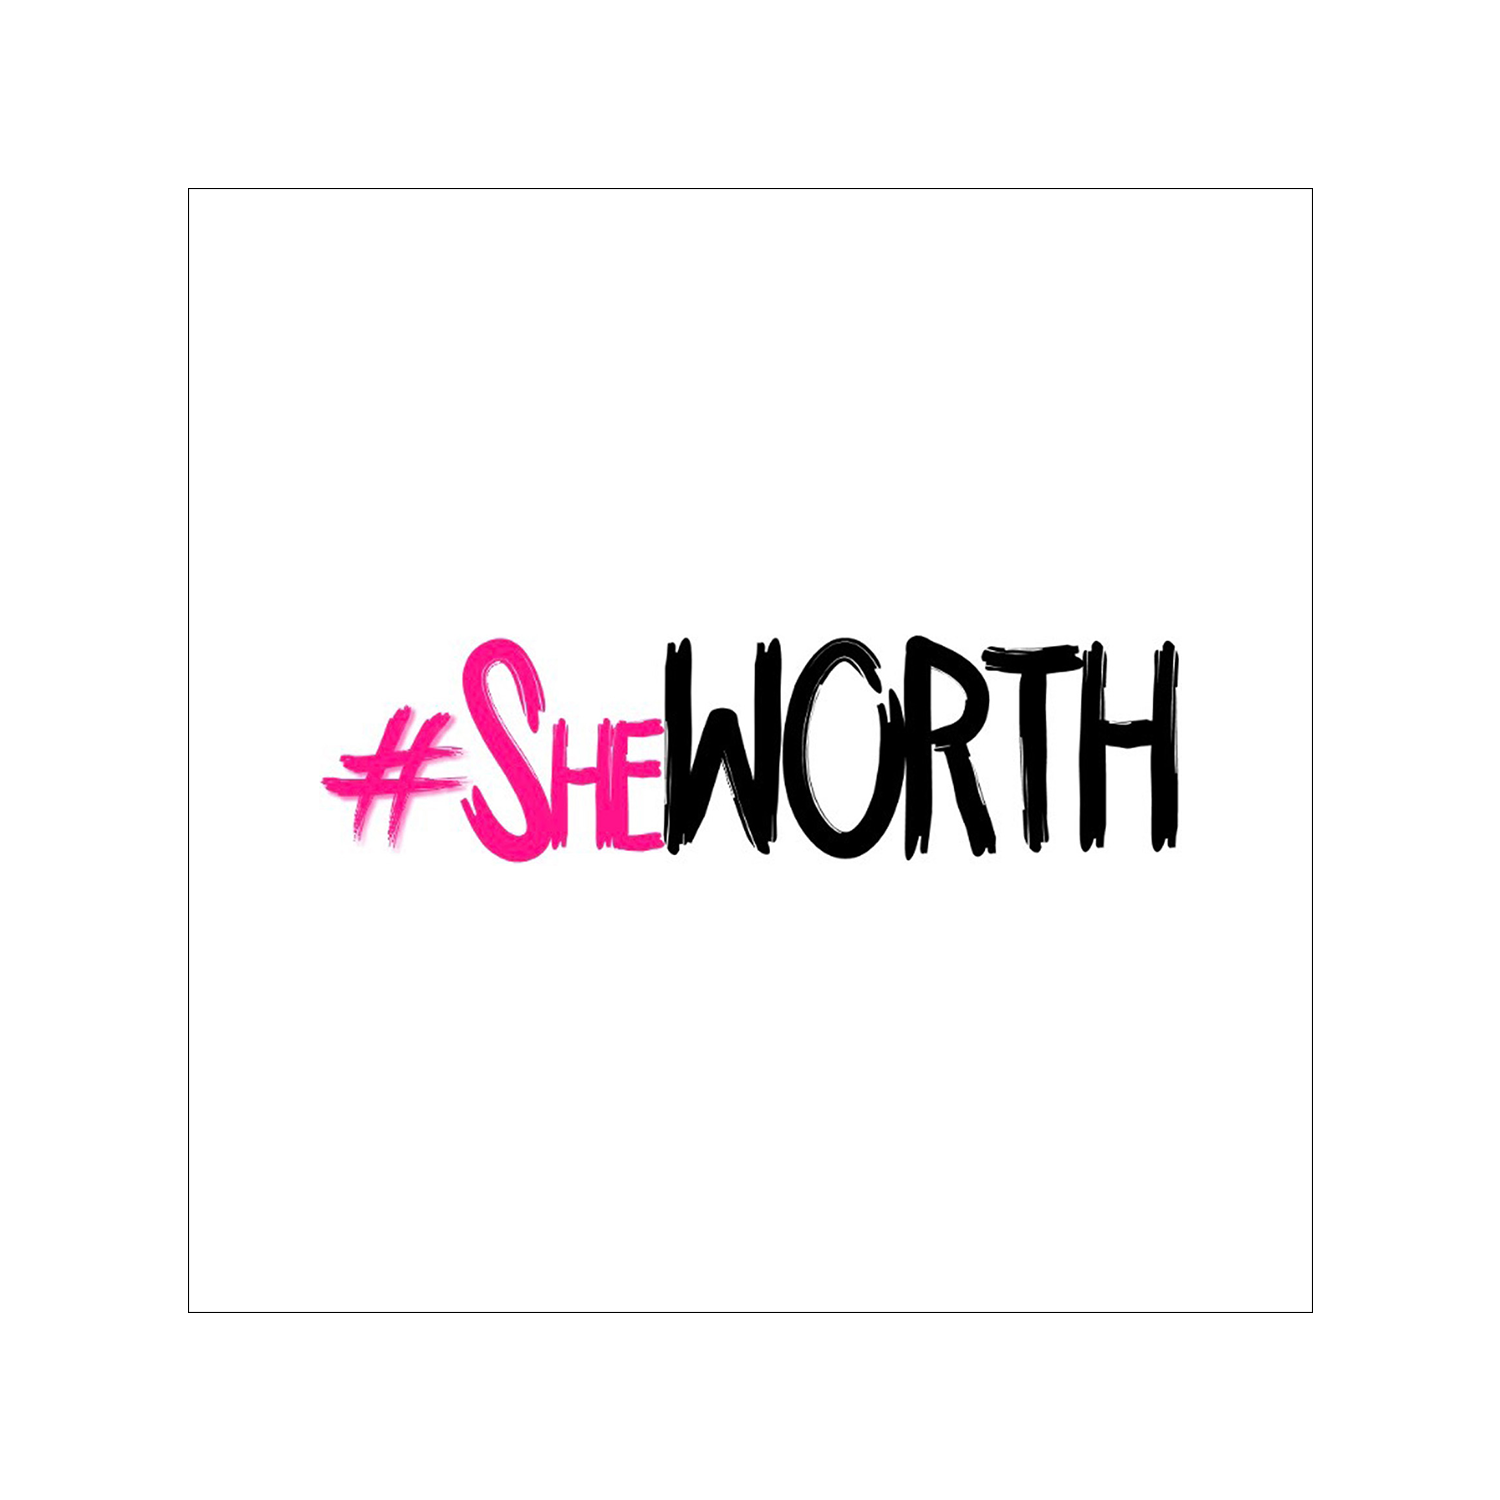 #SheWorth